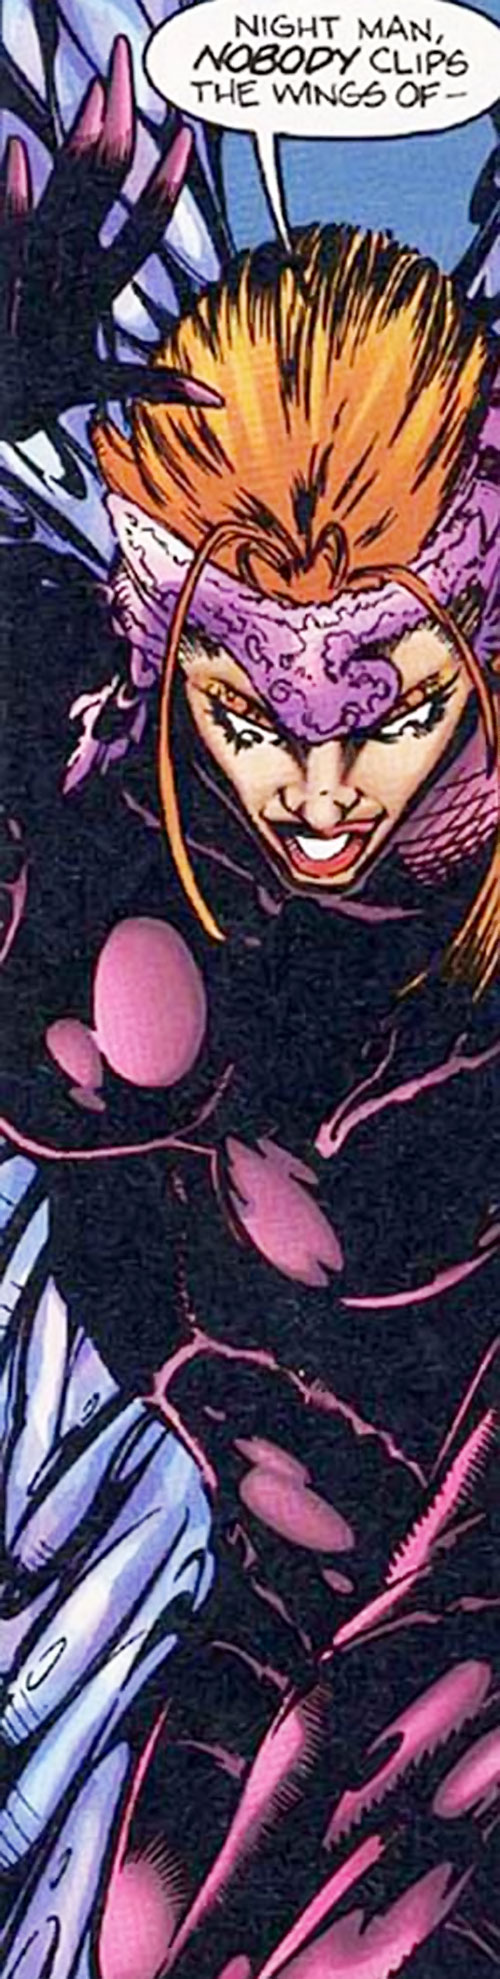 Bloodfly (Night Man enemy) (Ultraverse comics)